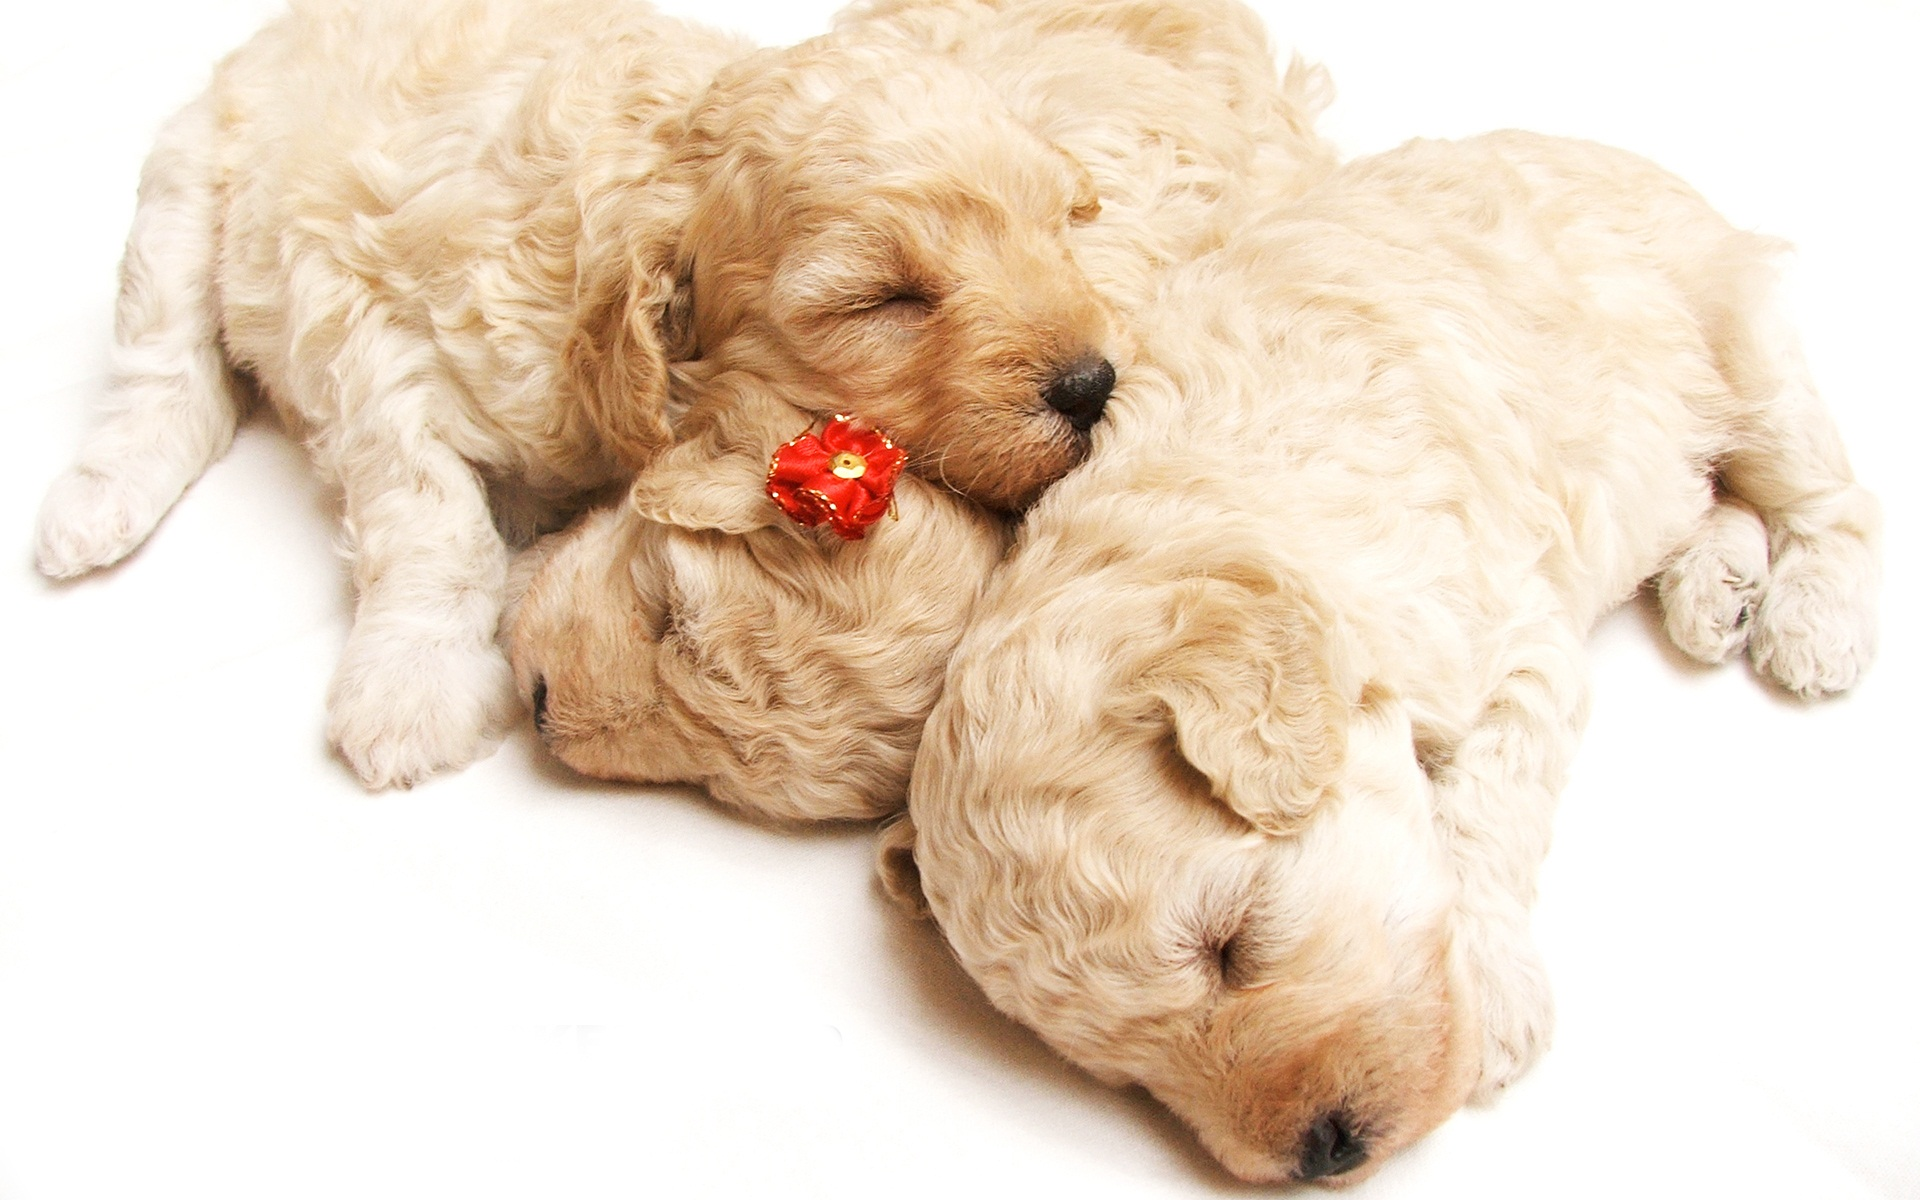 Cute Sleeping Puppies Wallpapers HD Wallpapers 1920x1200